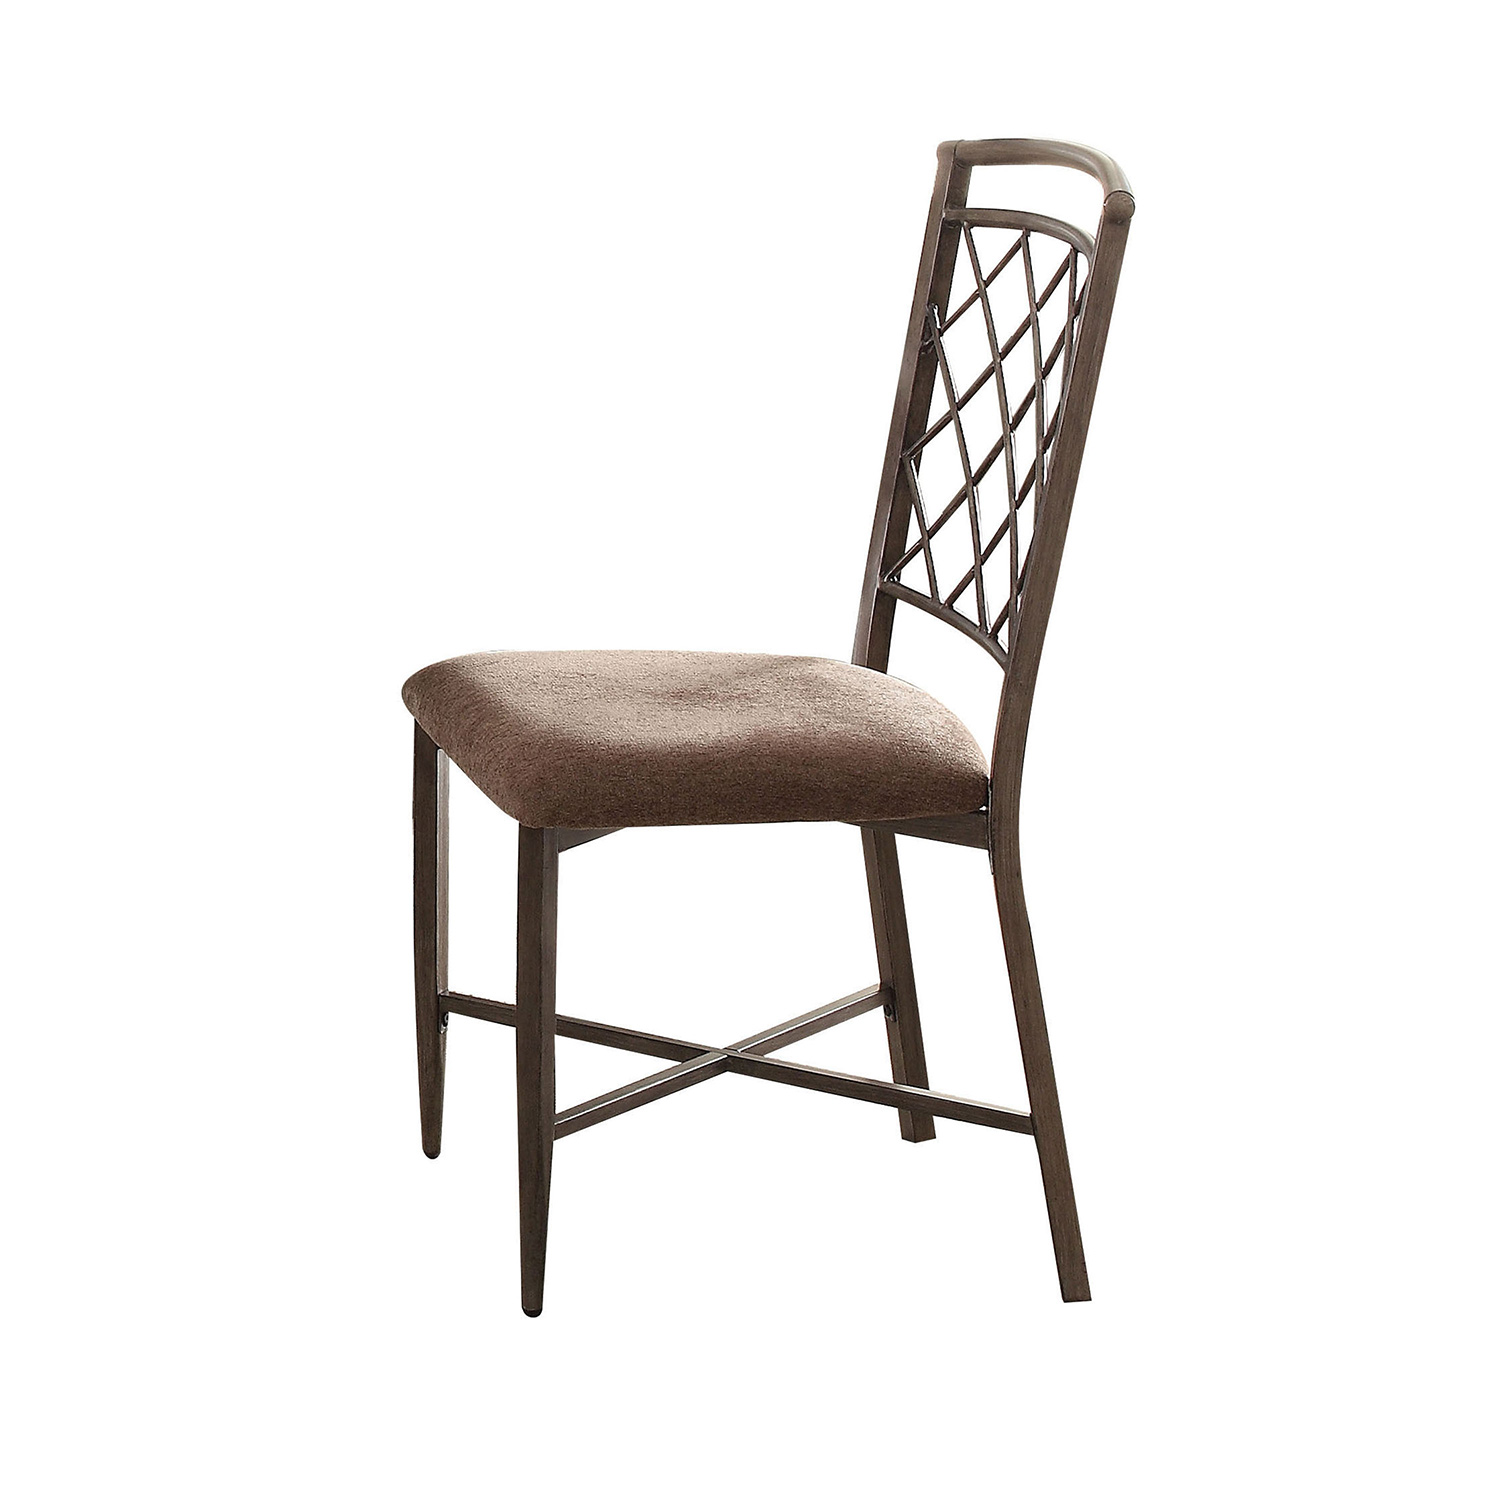 Acme Aldric Side Chair - Fabric Marble/Antique